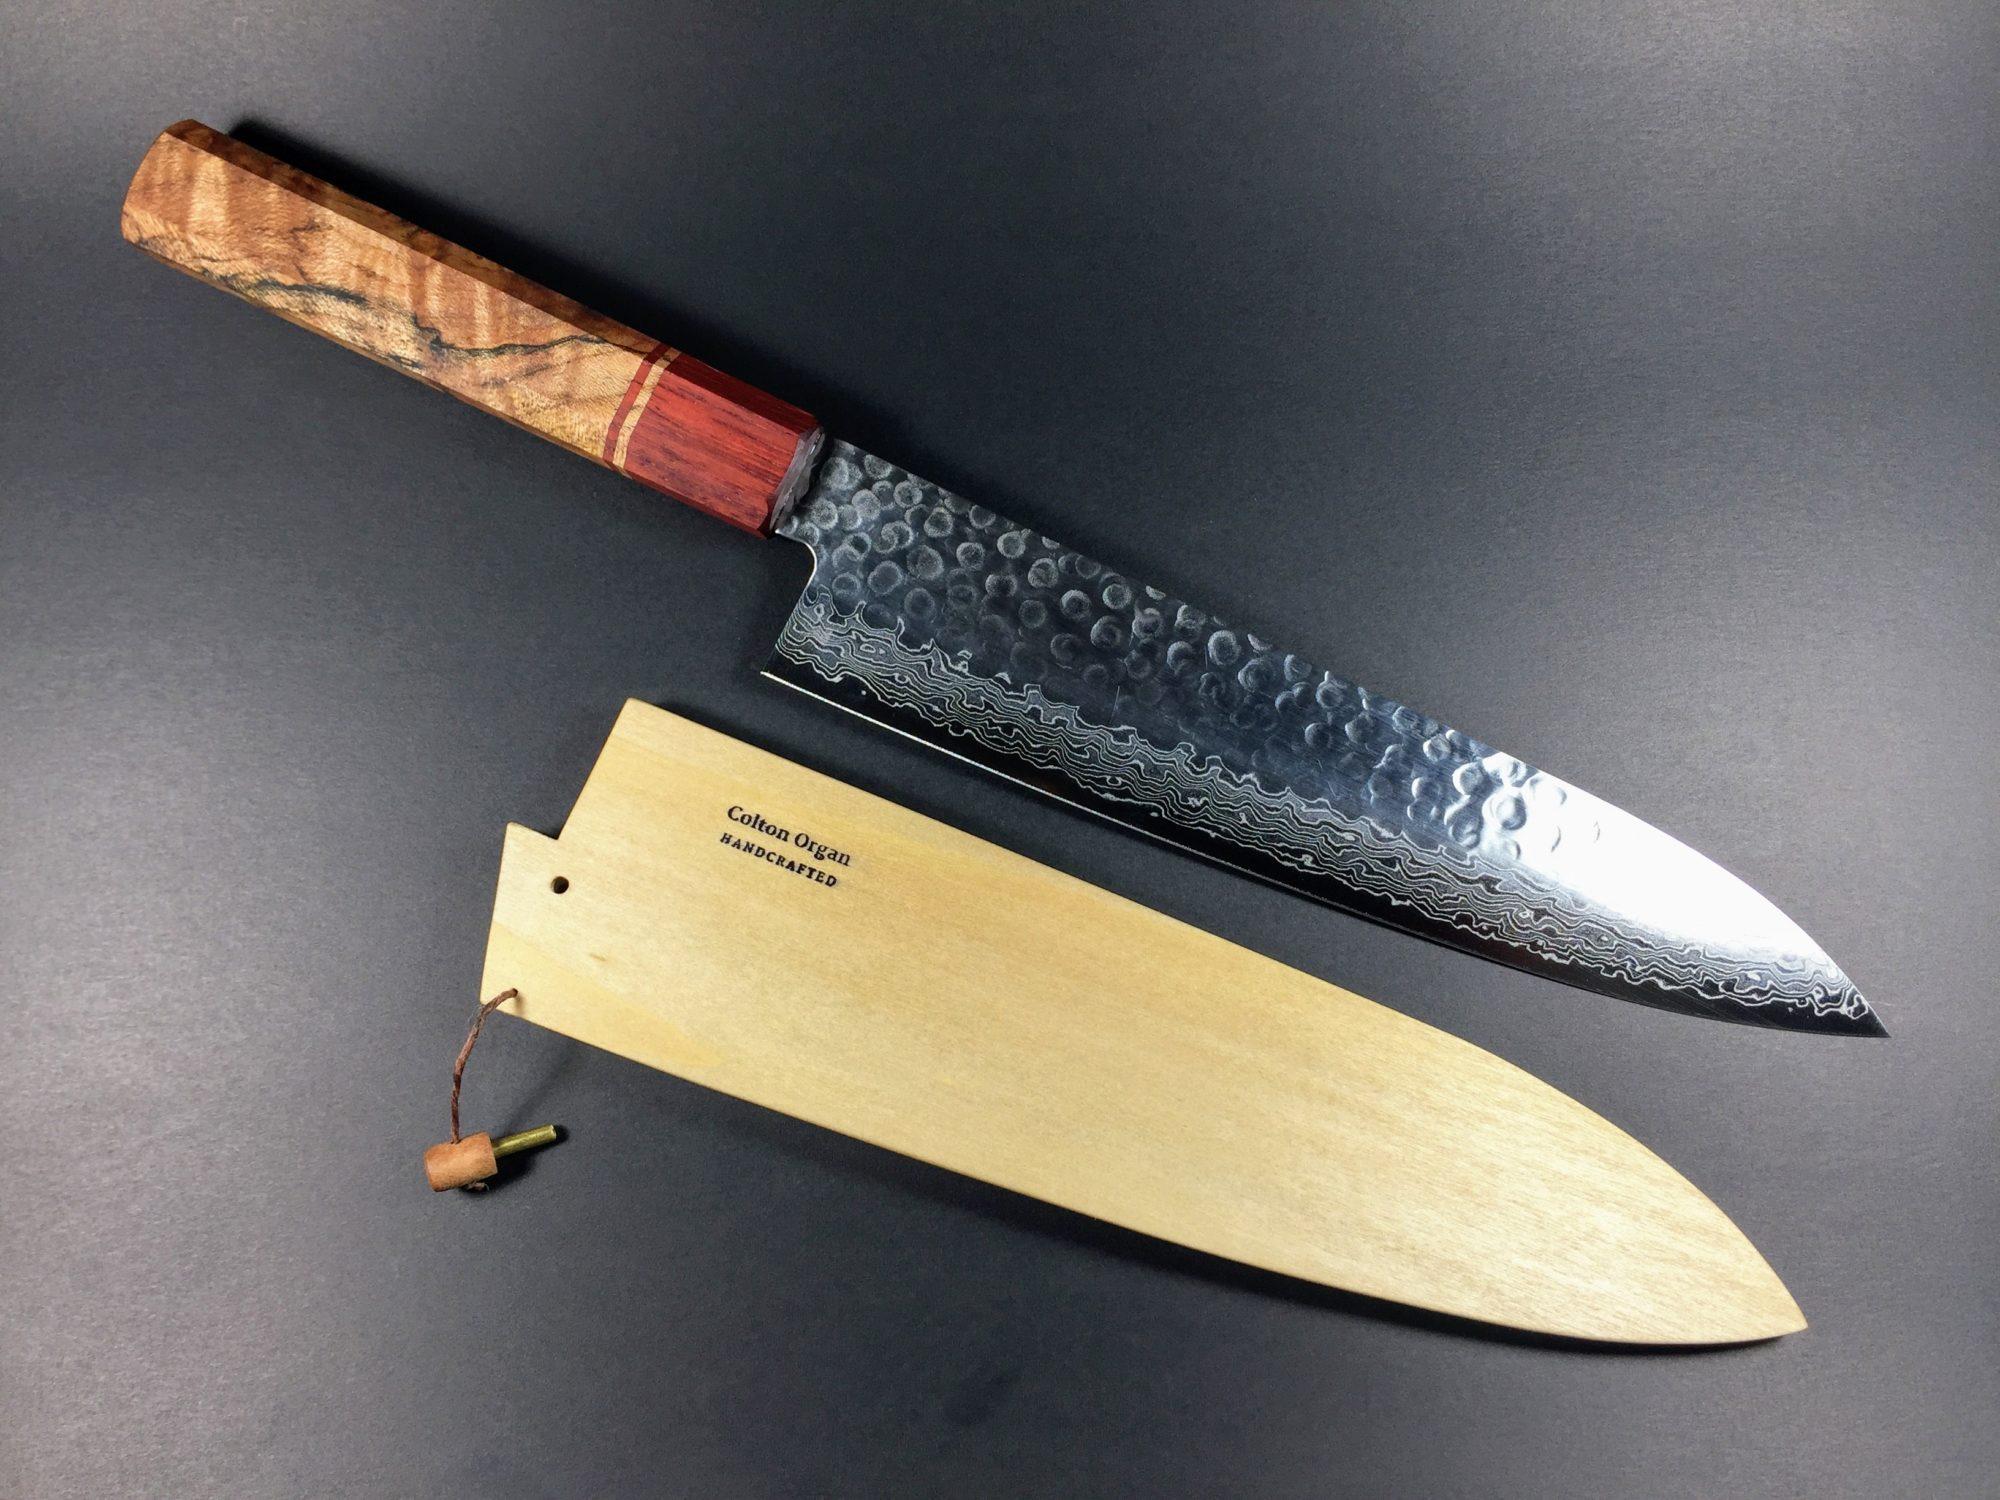 wa-handle gyuto by Colton Organ